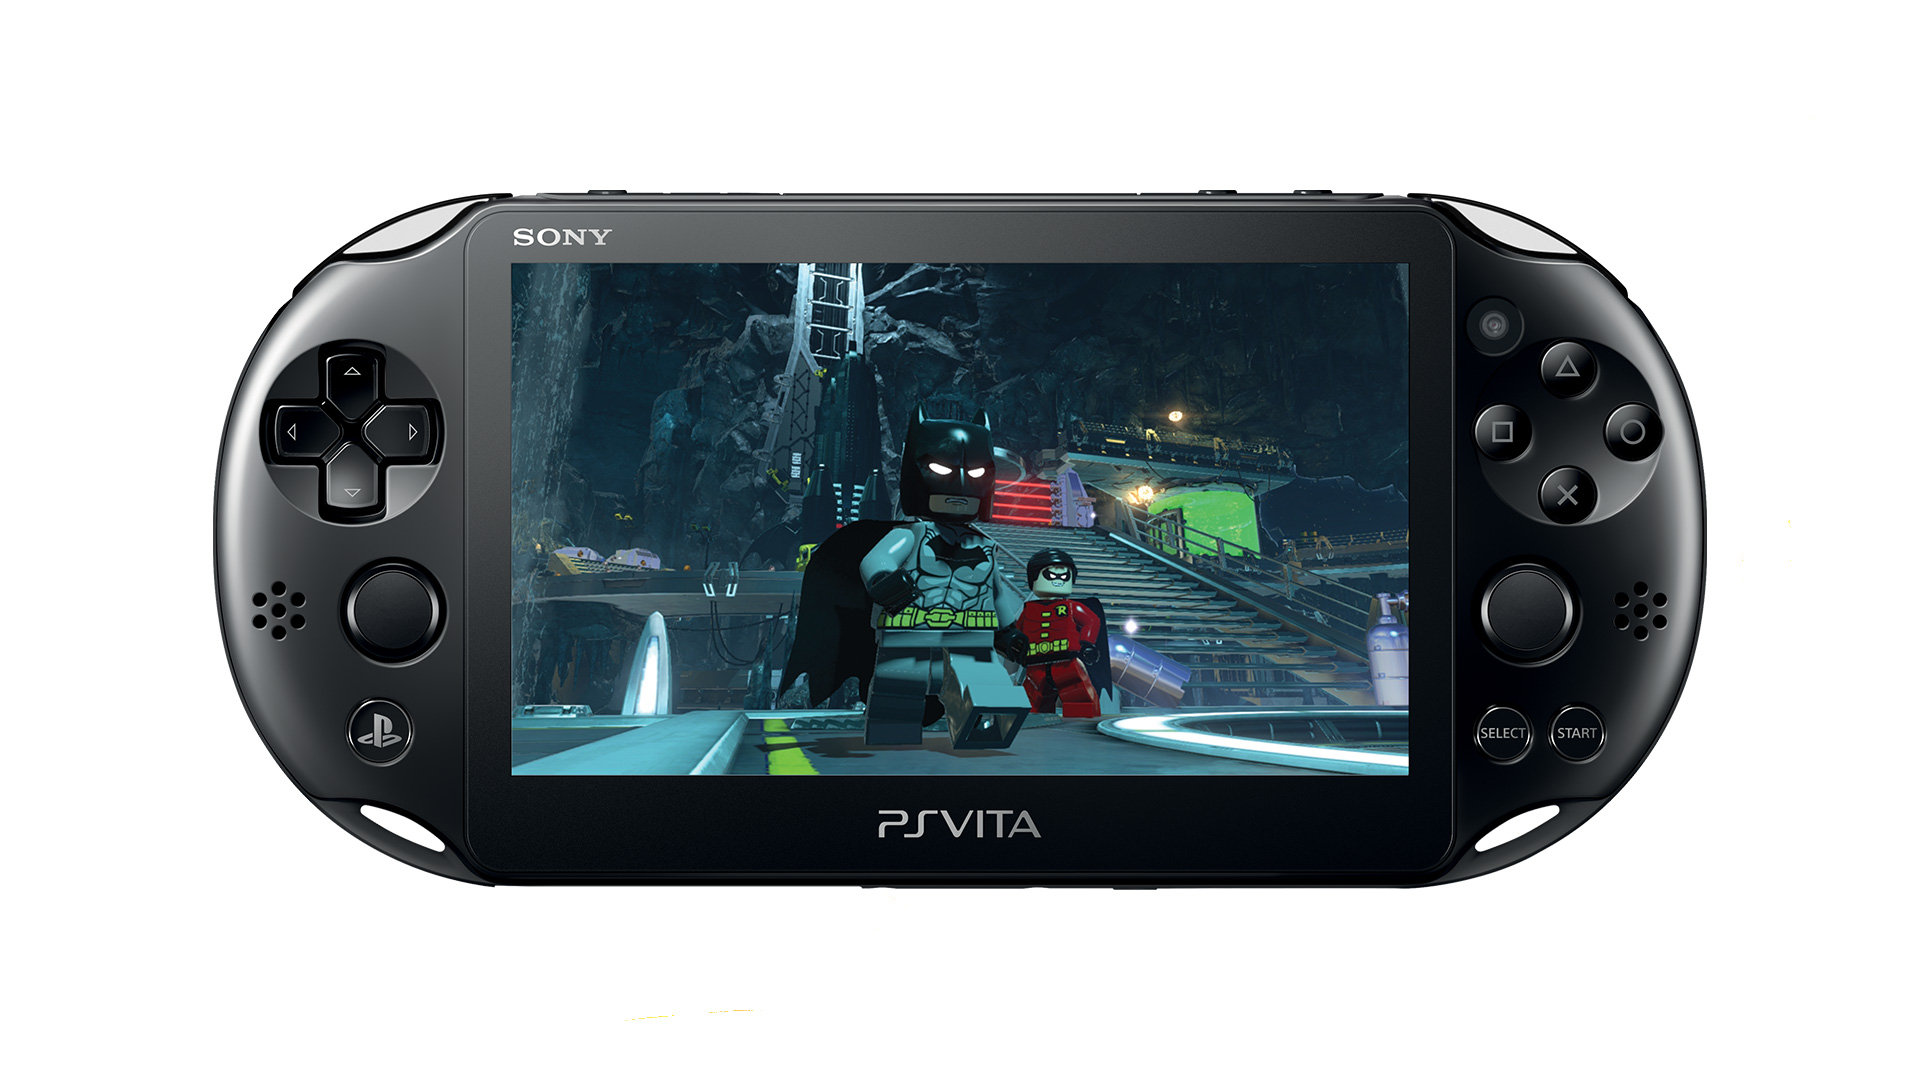 Sony Ps Vita Games : Sony has more playstation vita games planned just not a lot